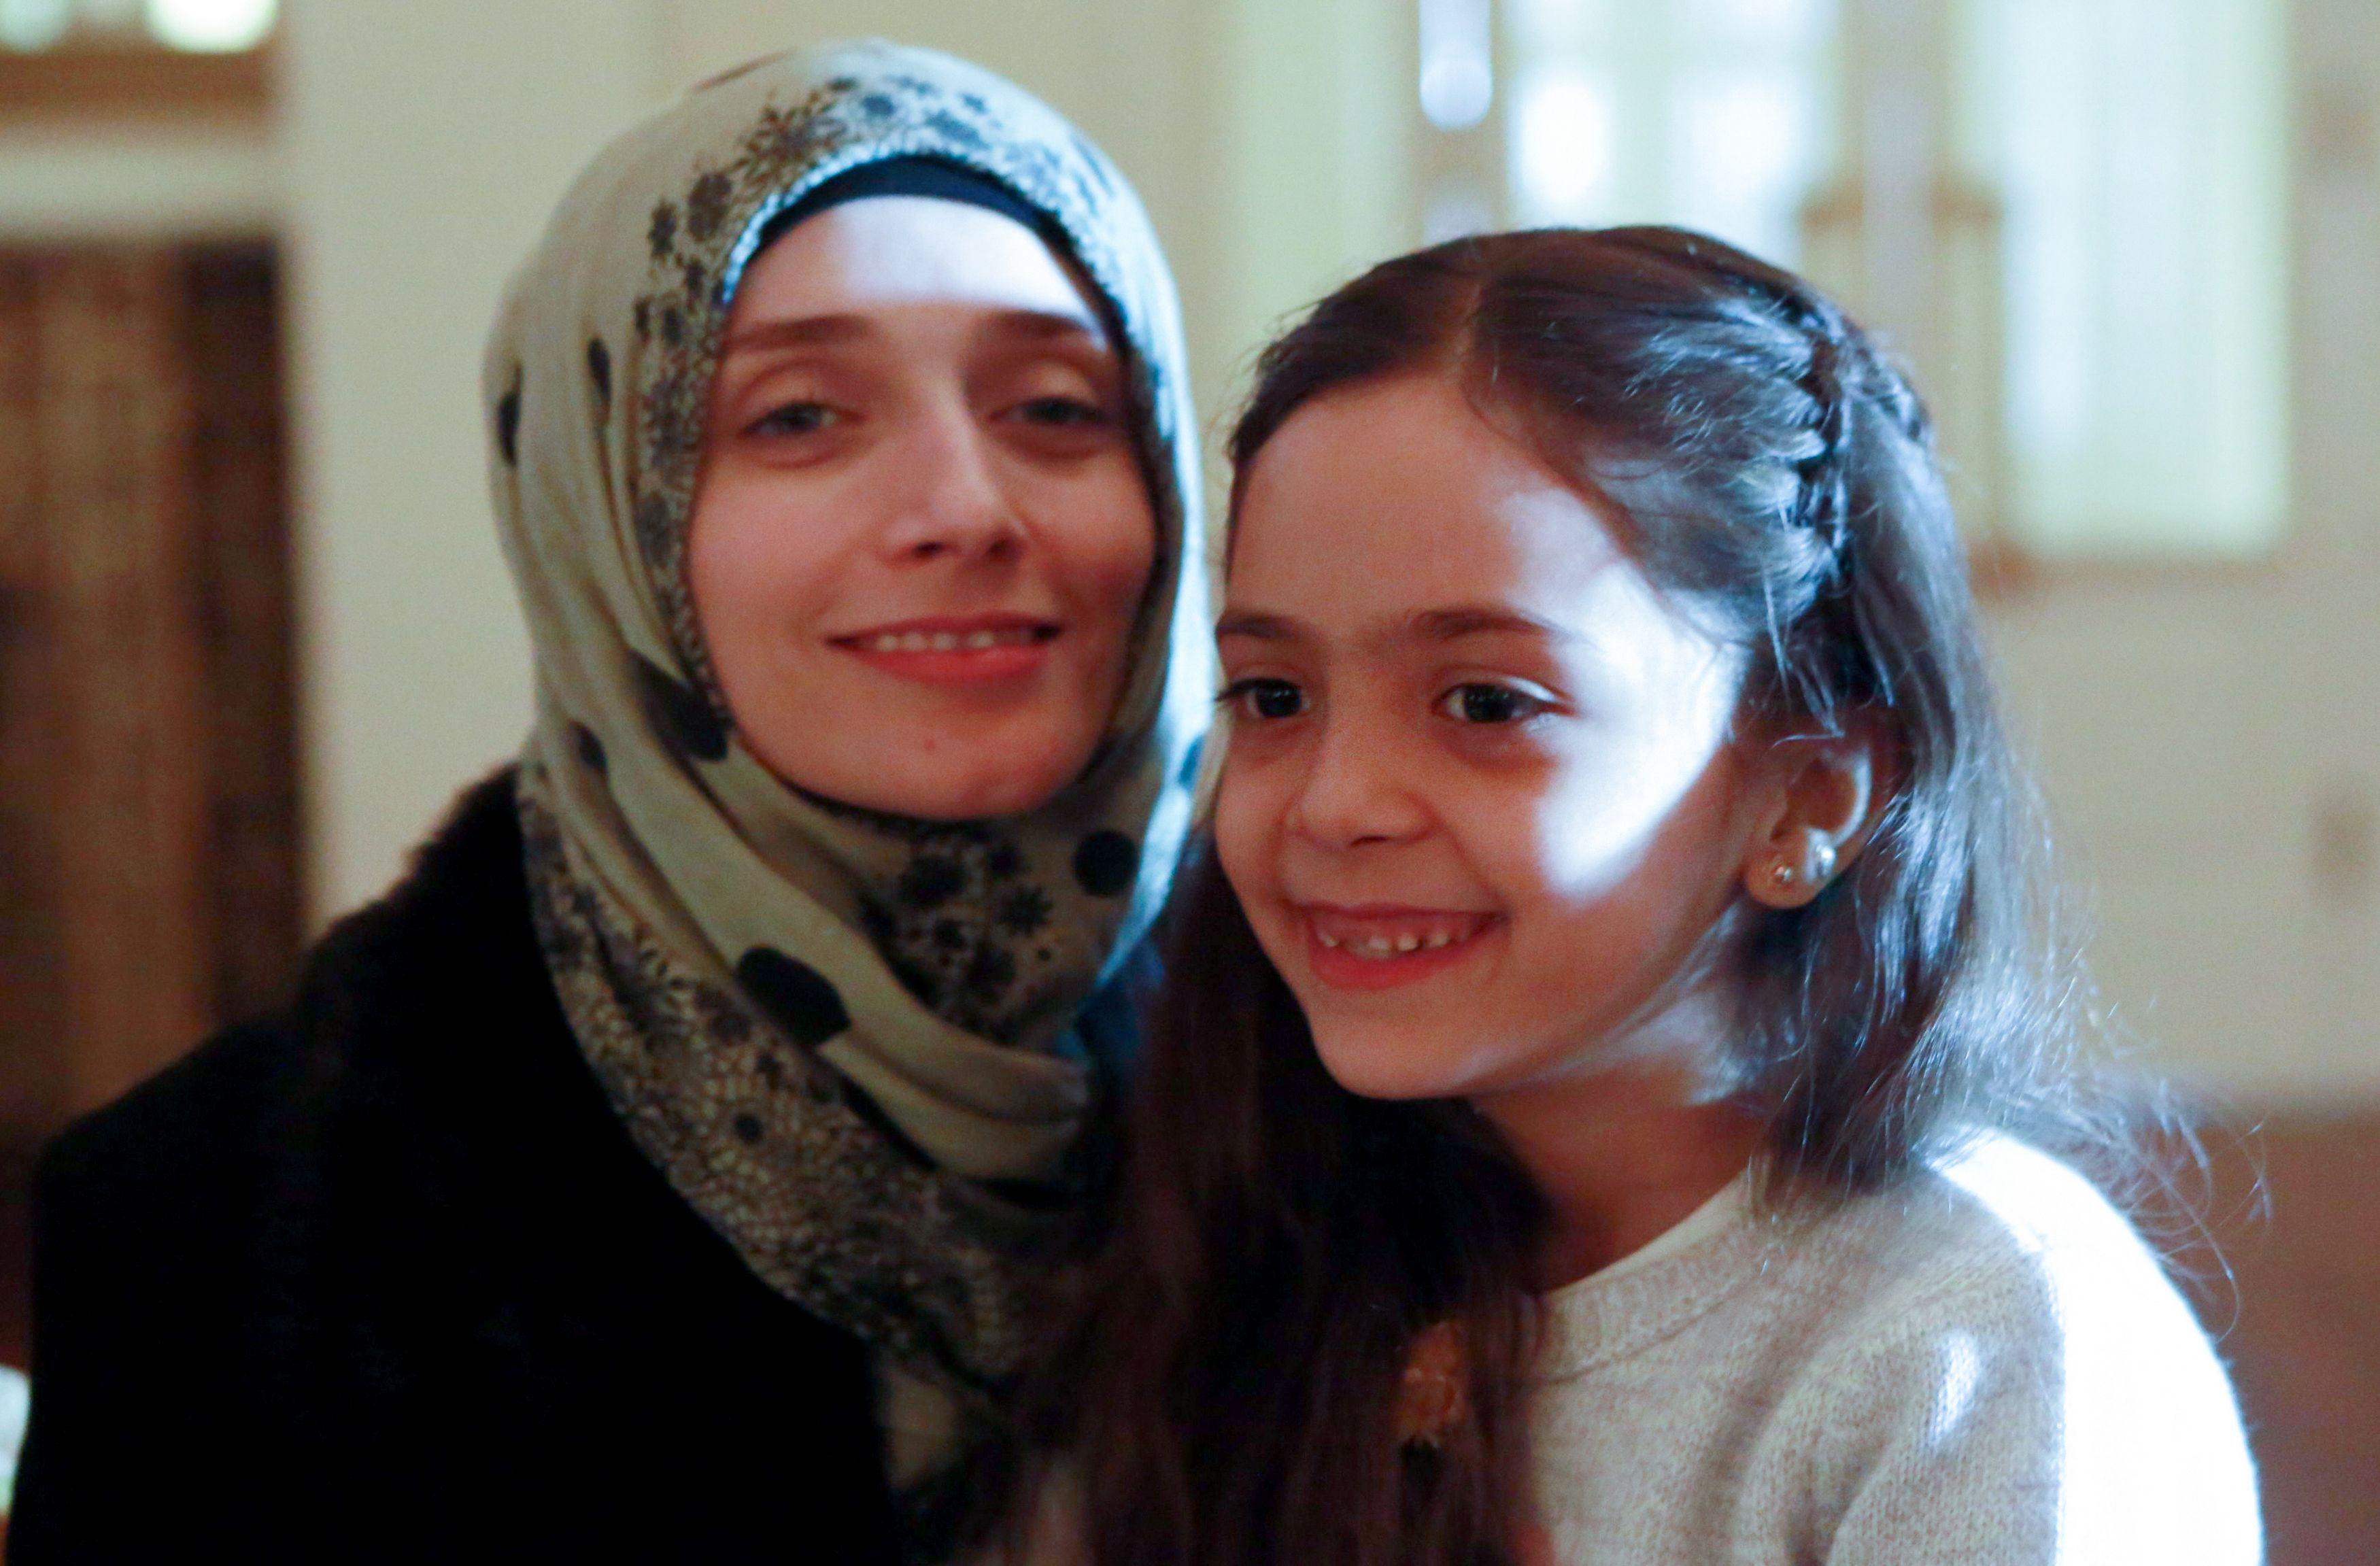 Syrian girl Bana al-Abed (R), known as Aleppo's tweeting girl, poses with her mother Fatemah during an interview in Ankara, Turkey, on December 22, 2016.